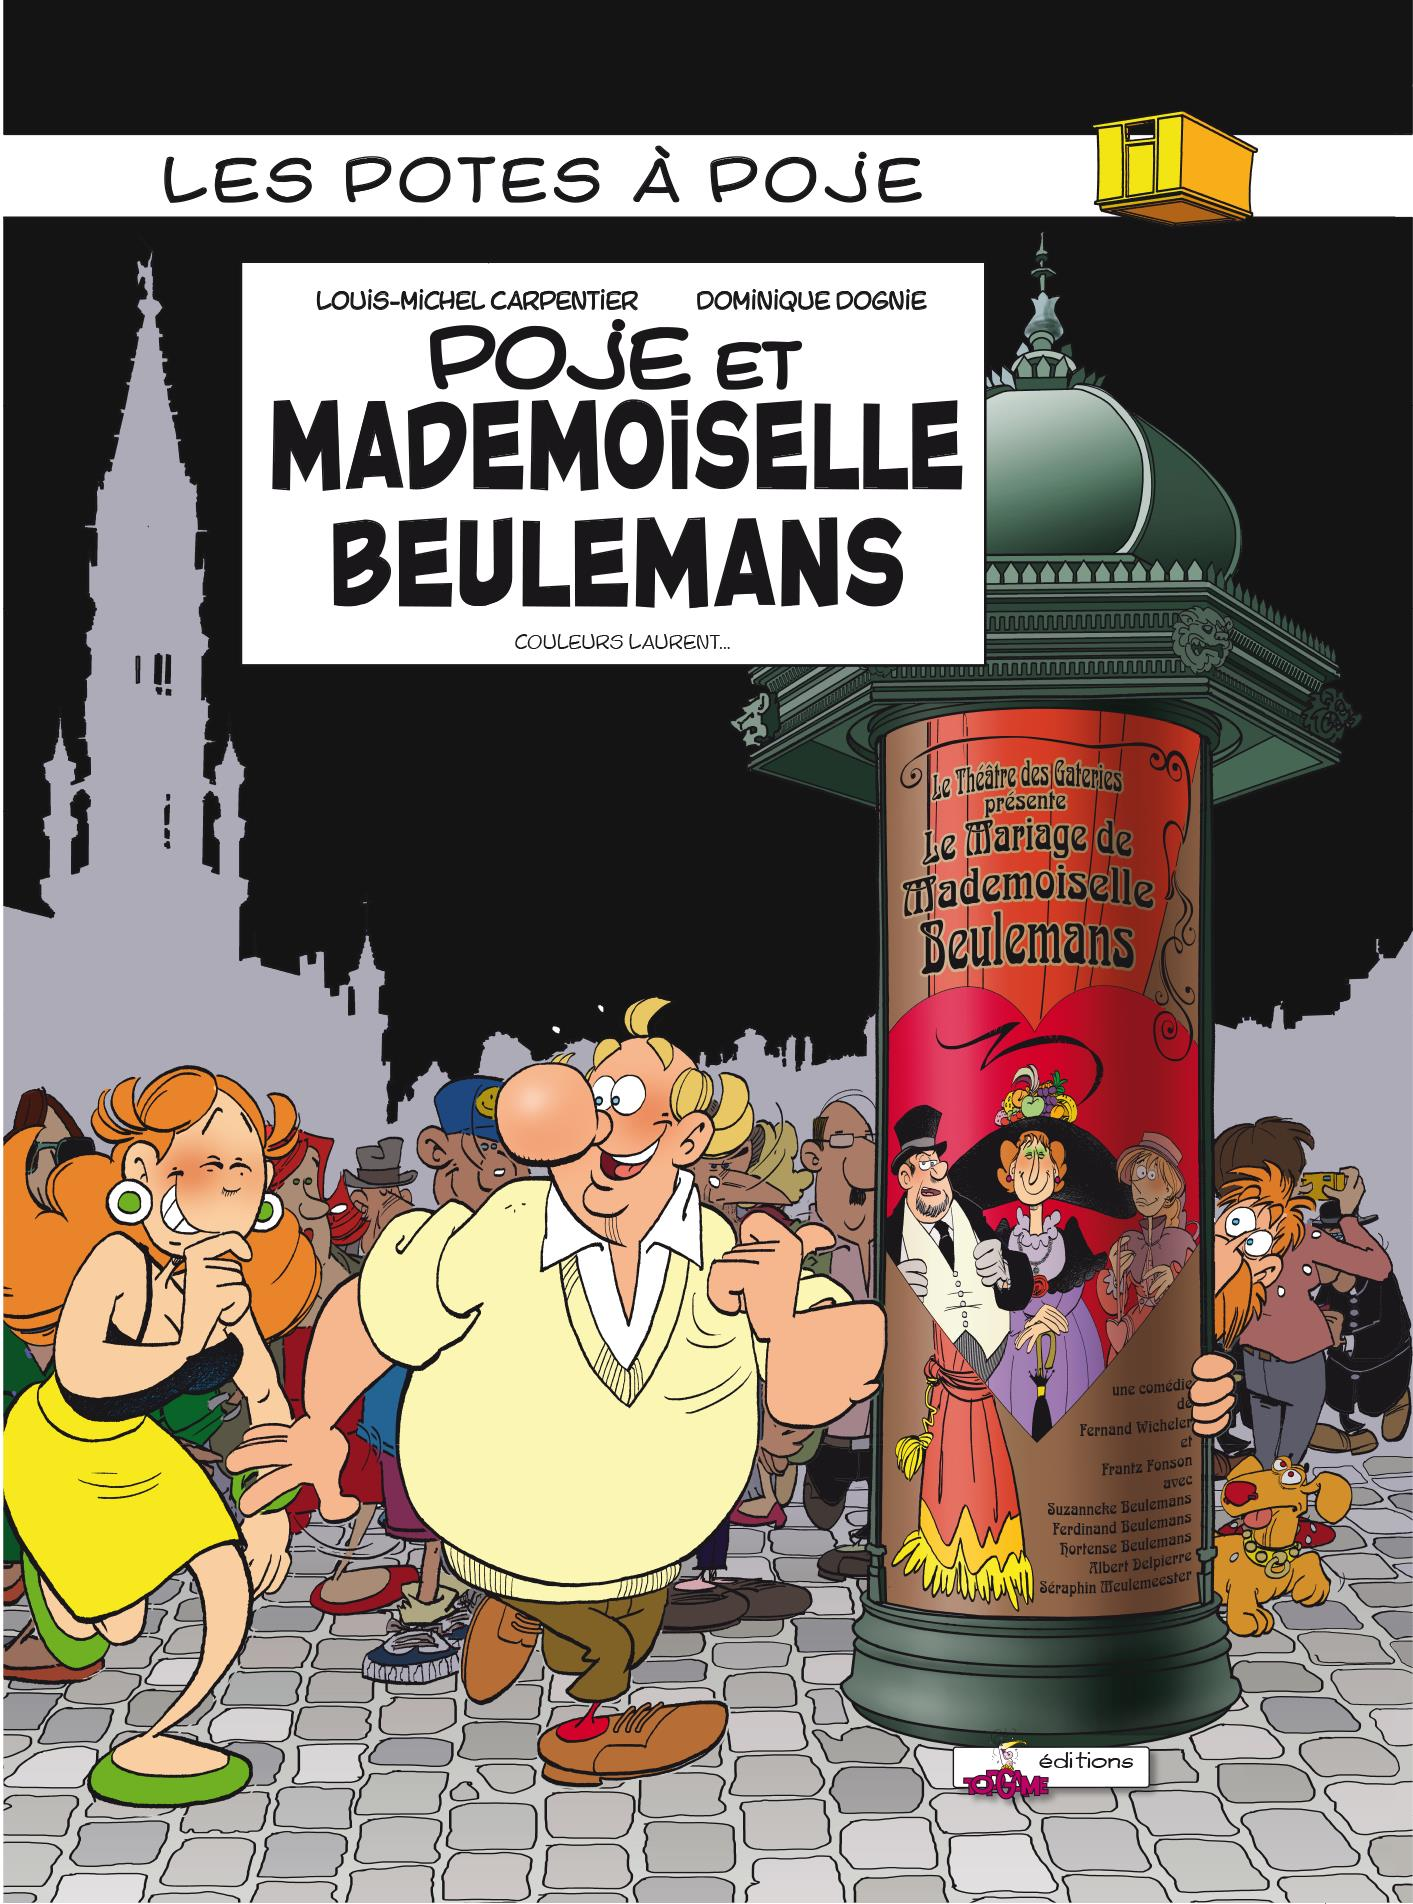 mademoiselle Beulemans